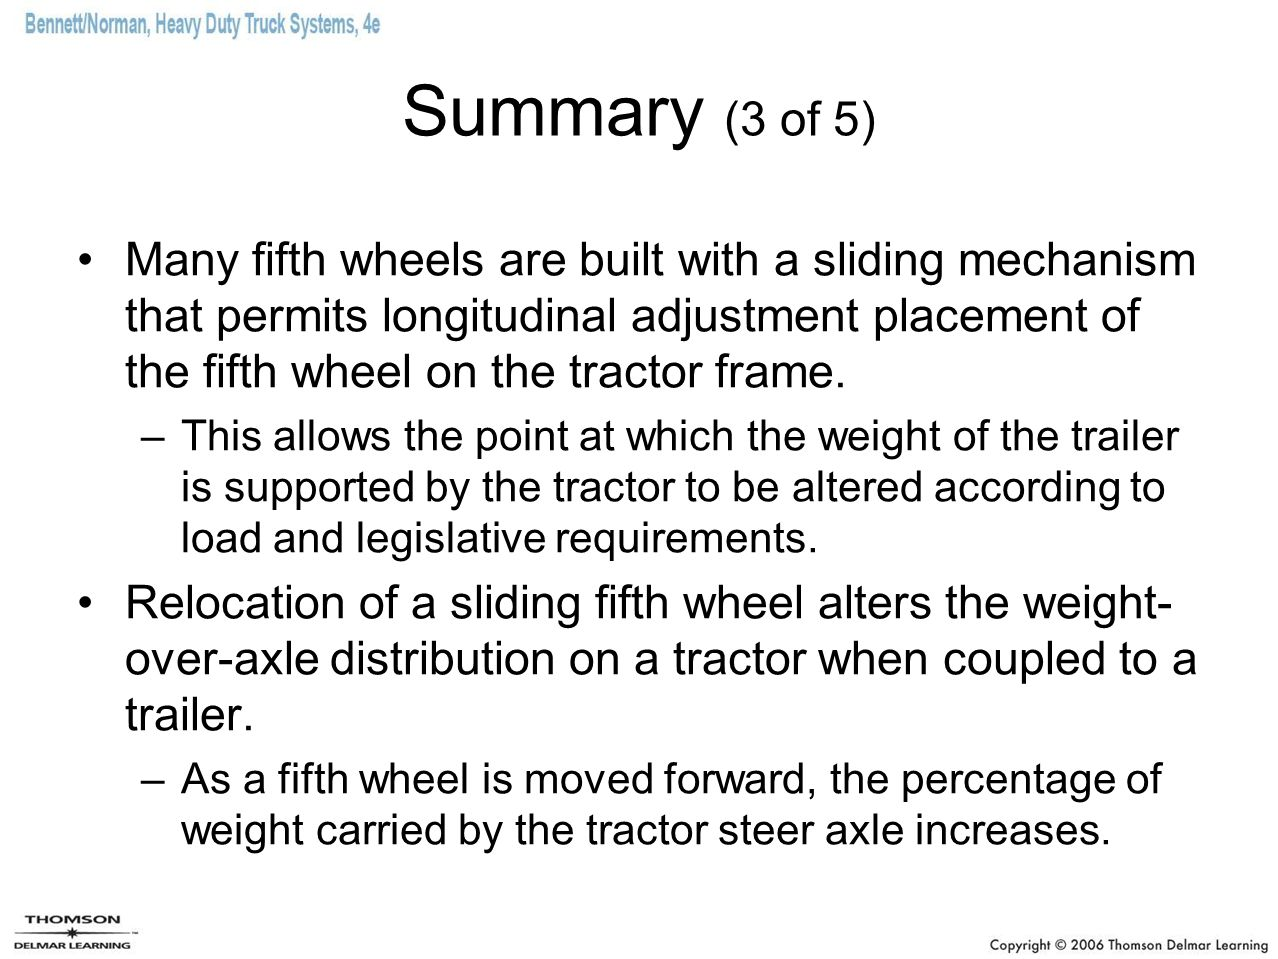 Summary (3 of 5) Many fifth wheels are built with a sliding mechanism that permits longitudinal adjustment placement of the fifth wheel on the tractor